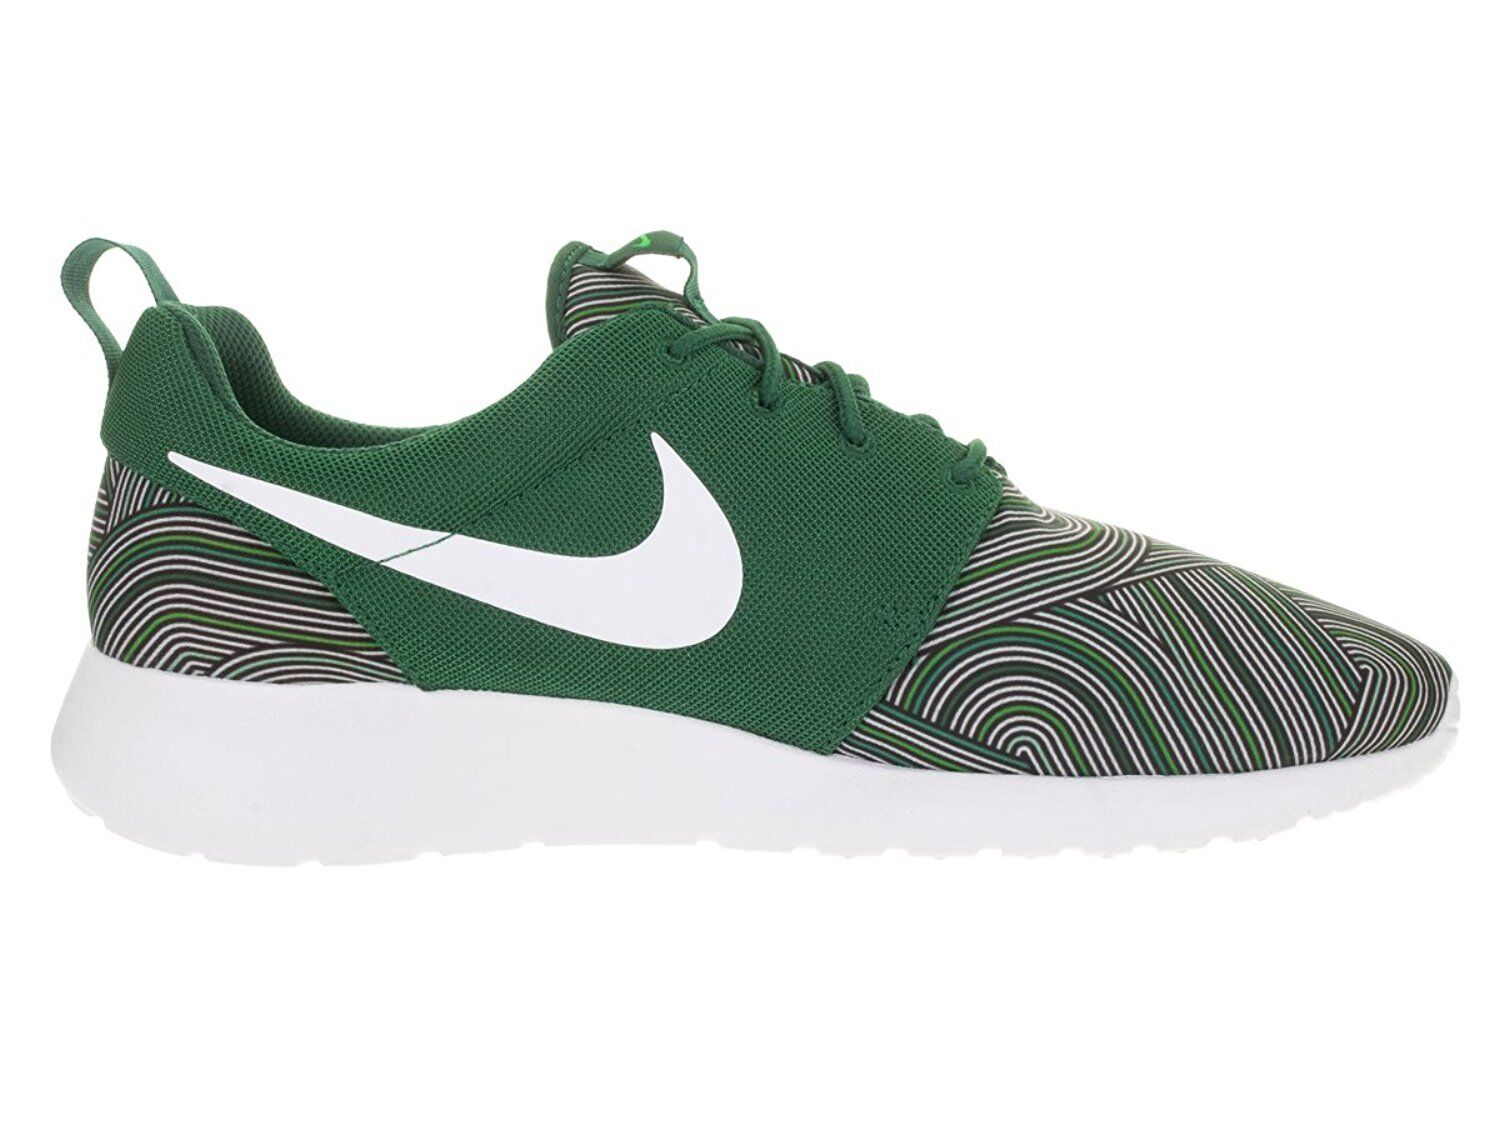 e3c0d89cf7d9 Details about Nike Mens Roshe One Print Gorge Running Shoes